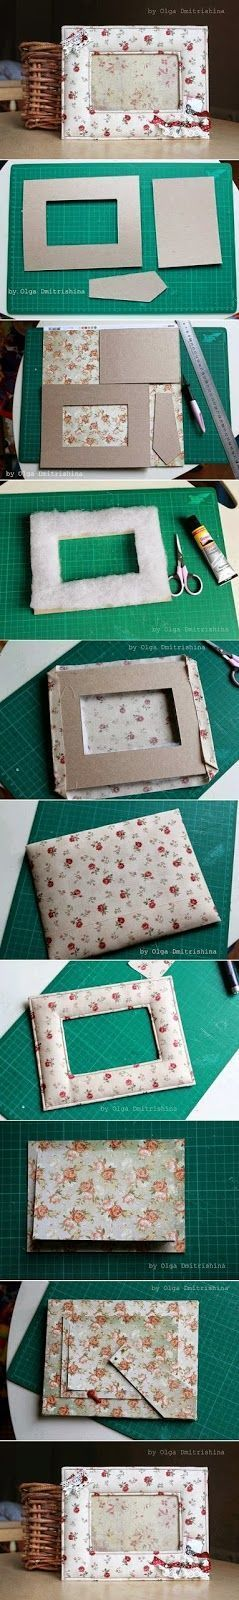 Easy Way To Make a Picture Frame: